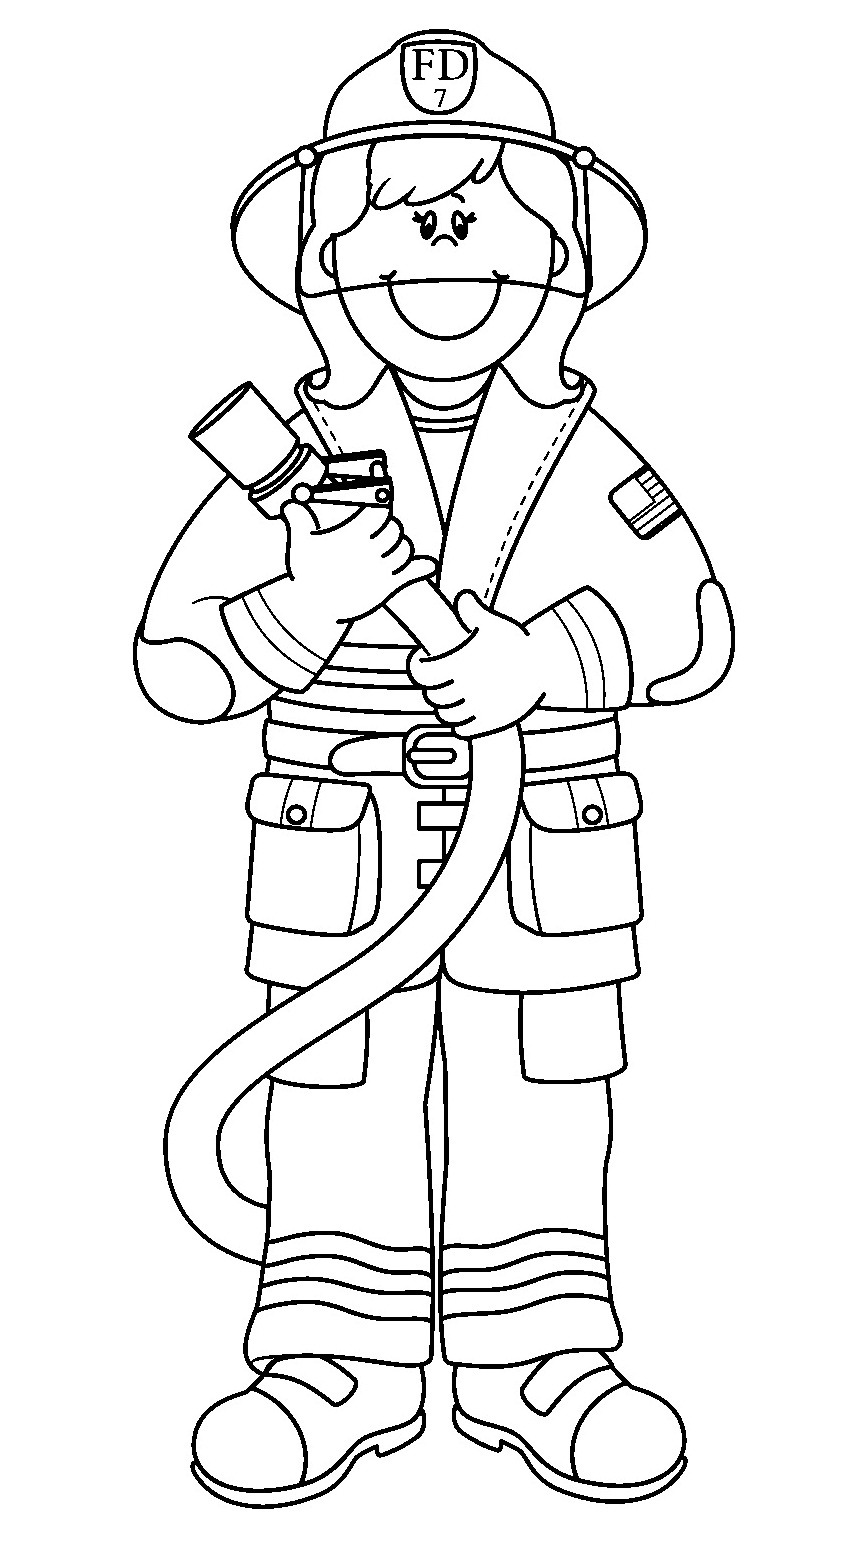 free coloring pages of firemen - photo#5